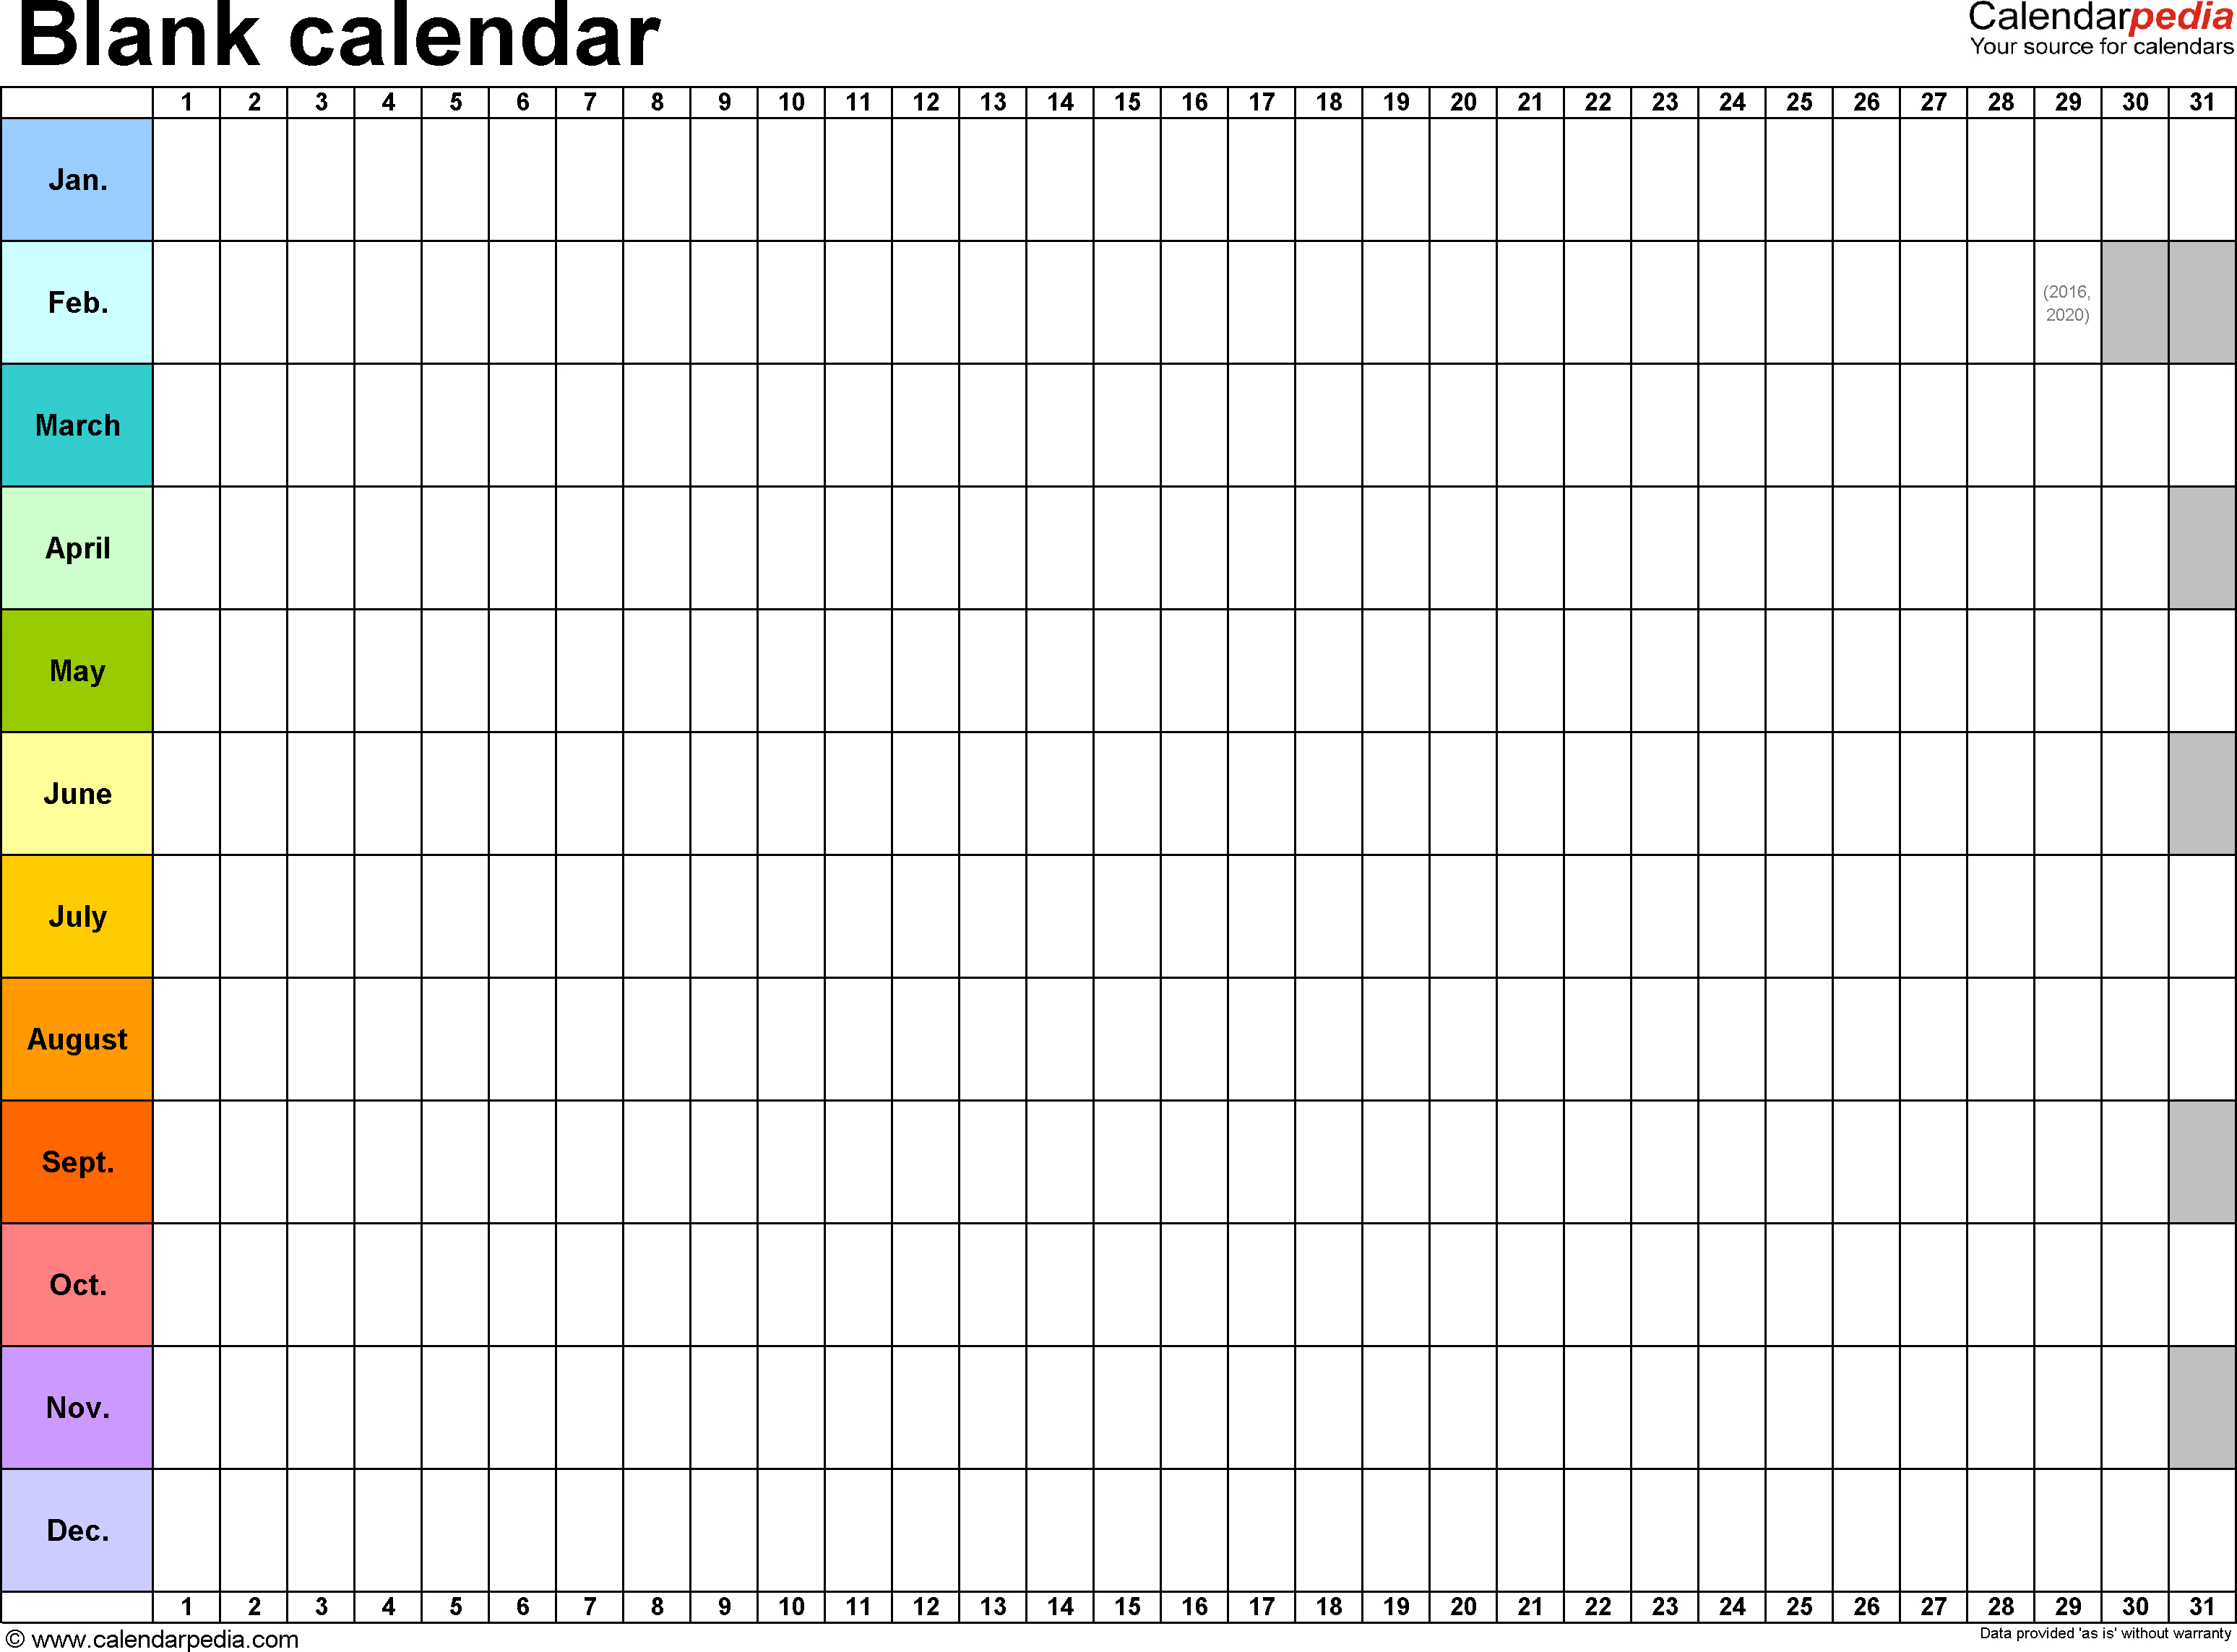 Blank Calendar - 9 Free Printable Microsoft Word Templates pertaining to Blank Monthly Calendar Print Out